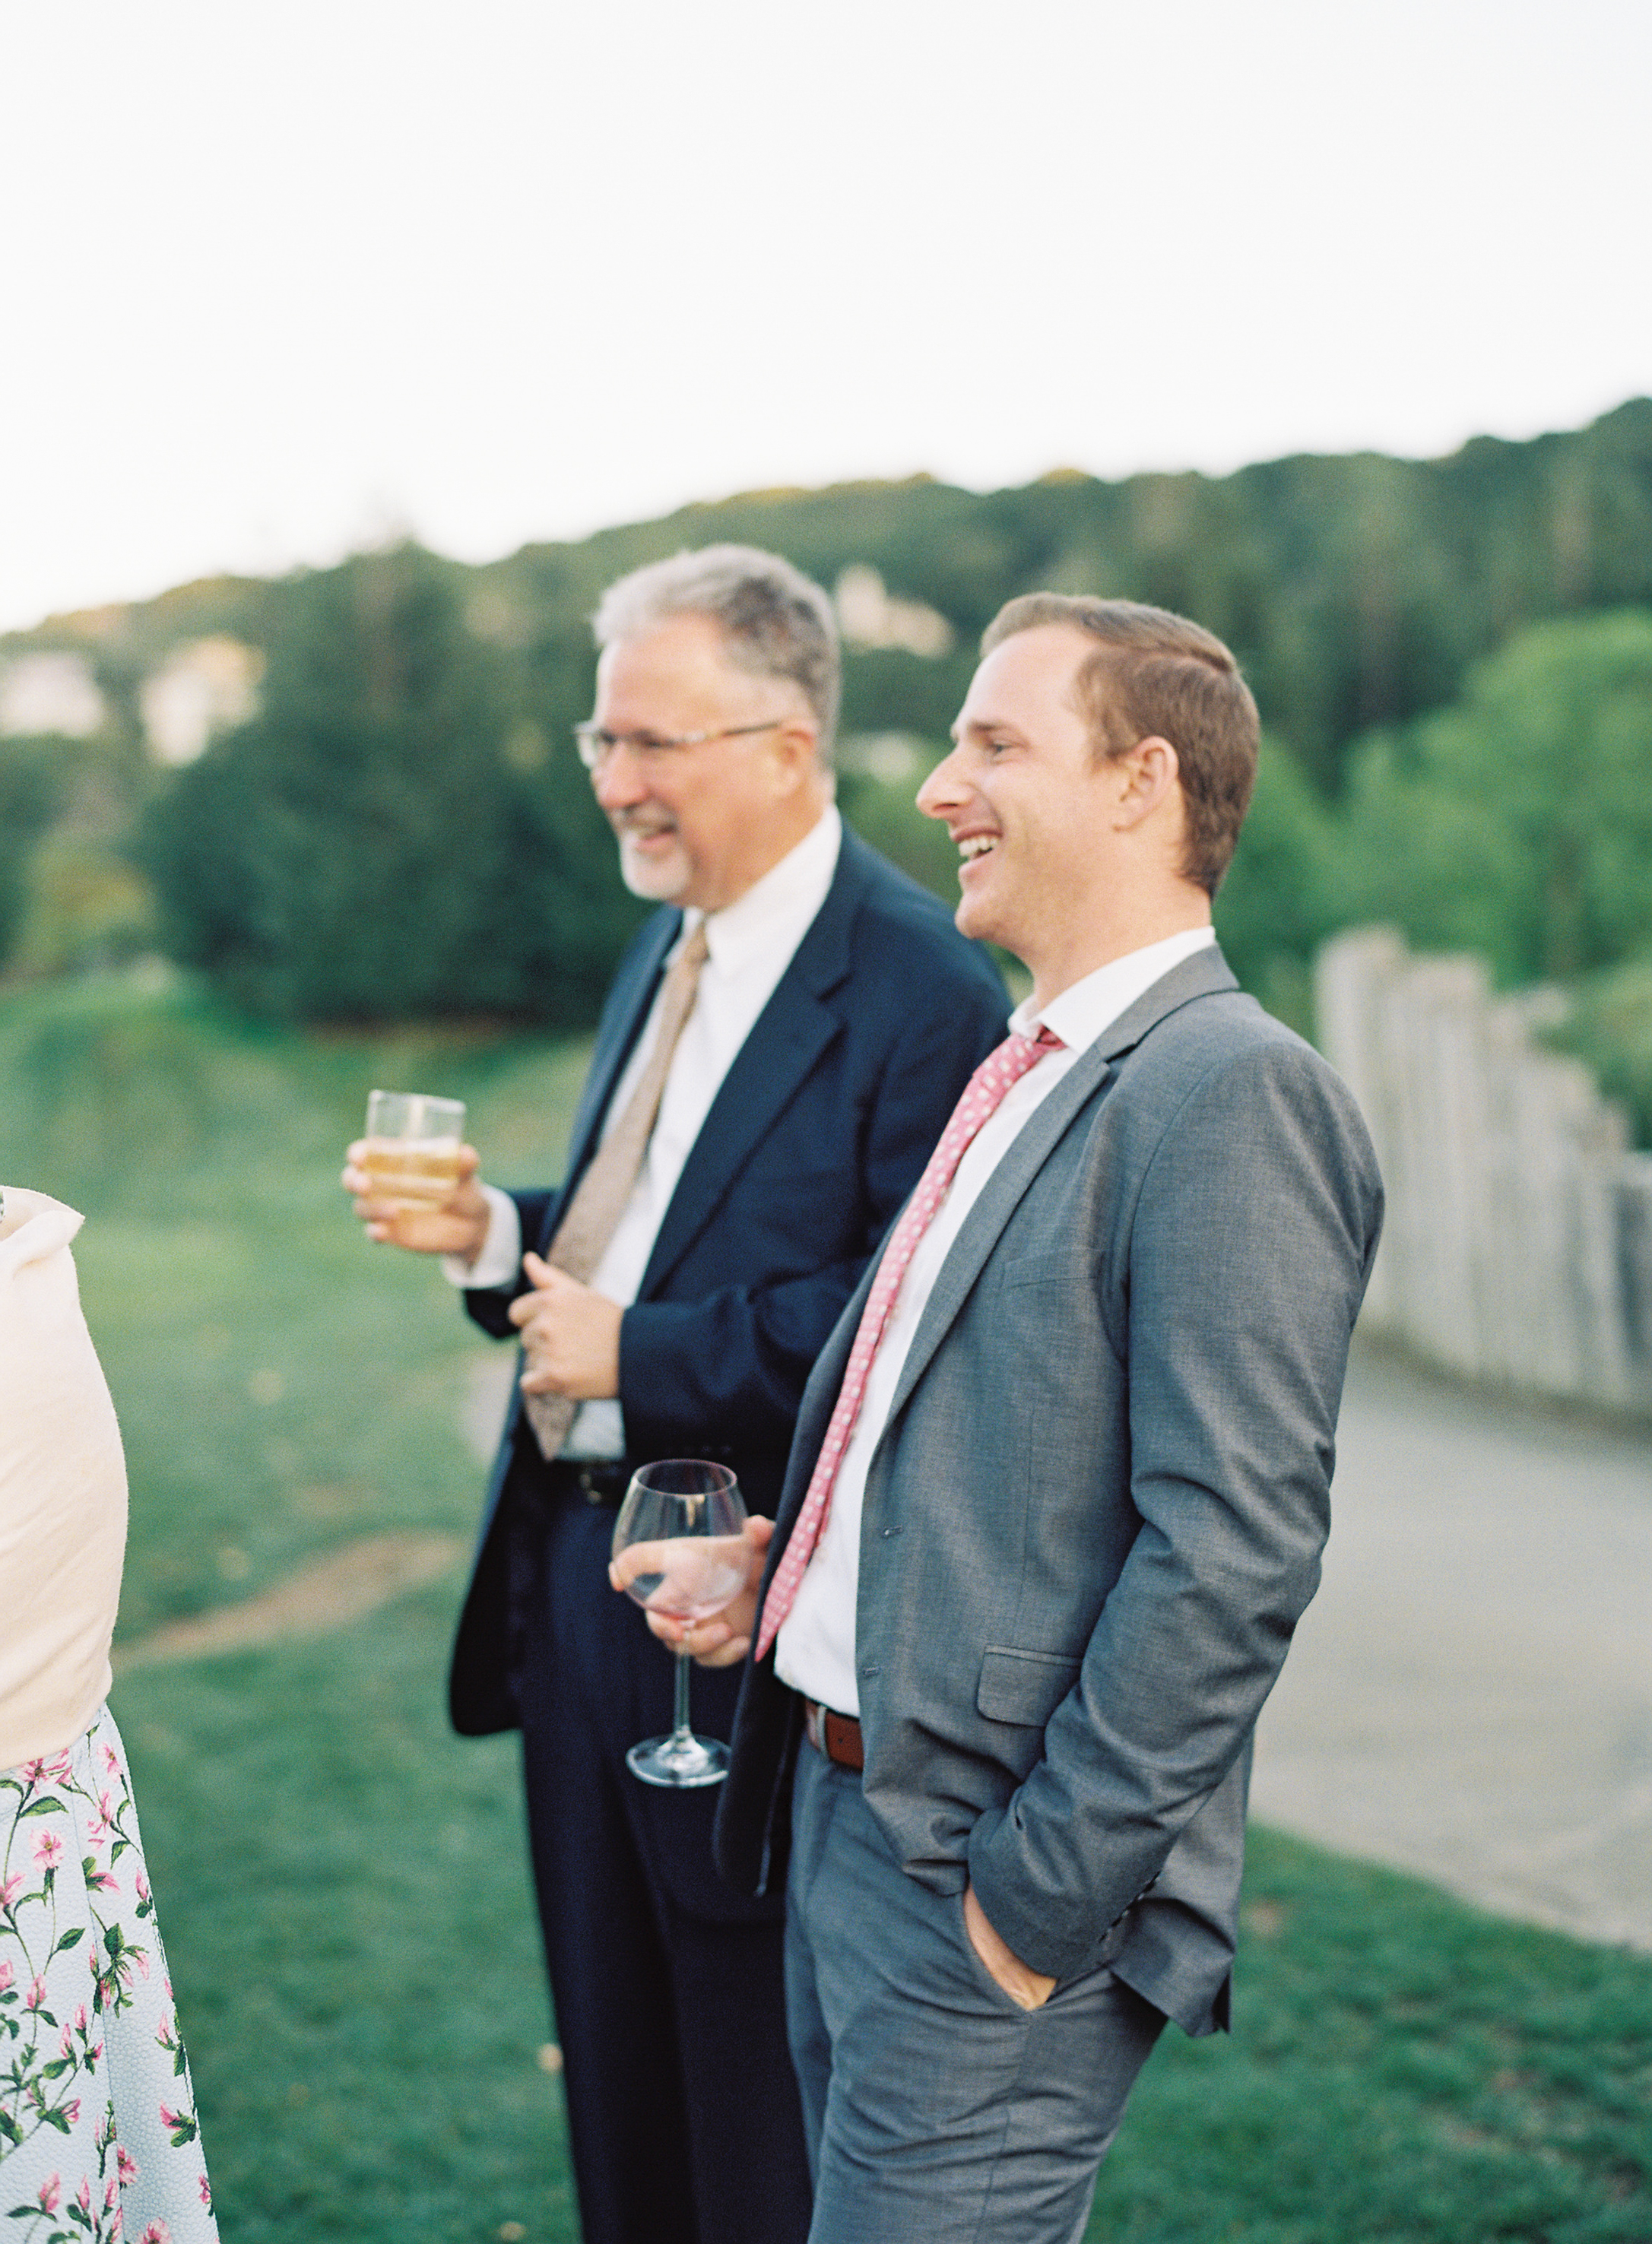 Meghan Mehan Photography - Carmel Valley Ranch Wedding 106.jpg